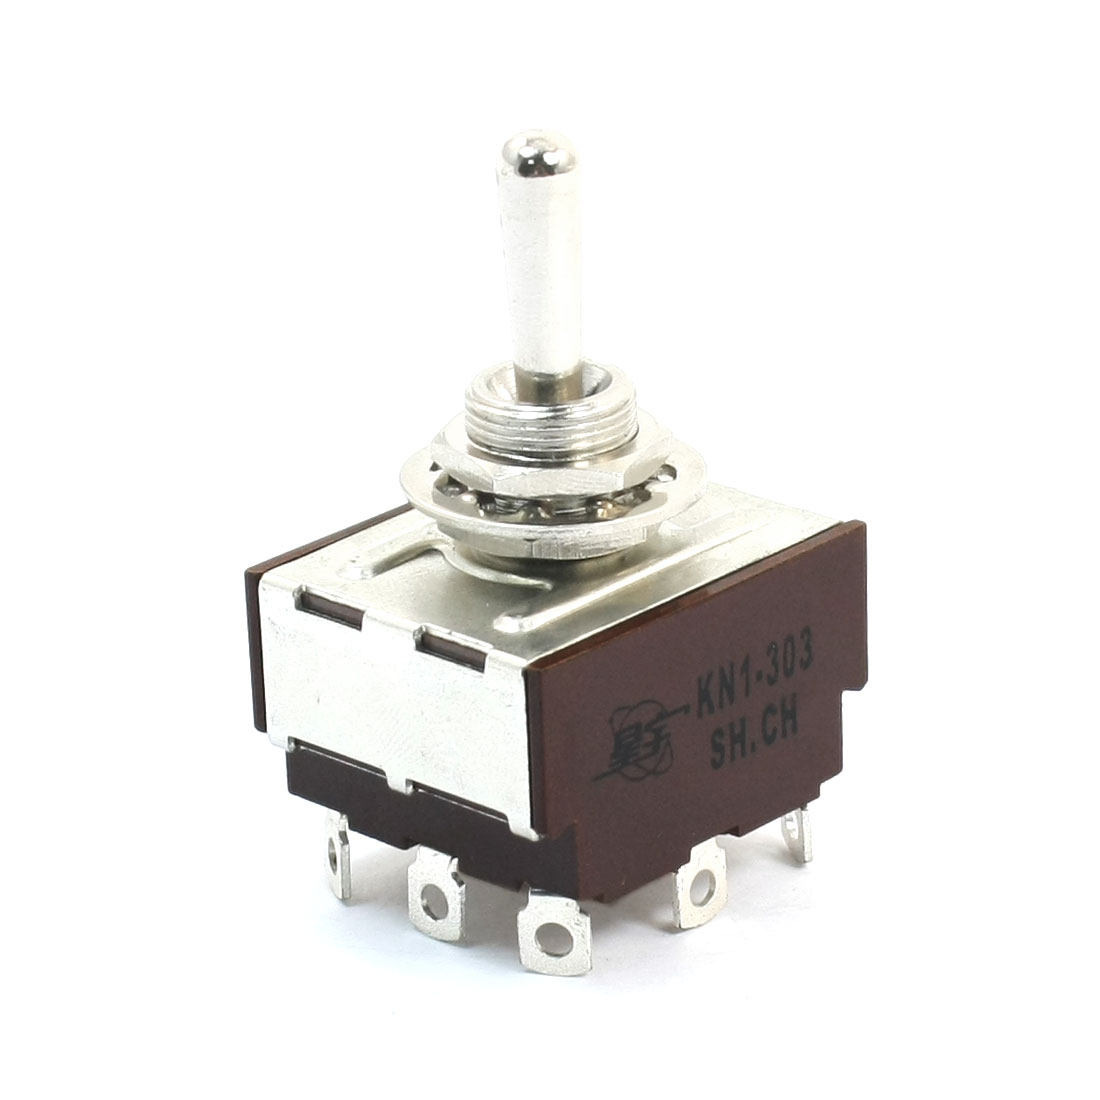 AC 250V 8A 12mm Mounting Hole Dia 3PDT ON/OFF/ON 9Pins Toggle Switch